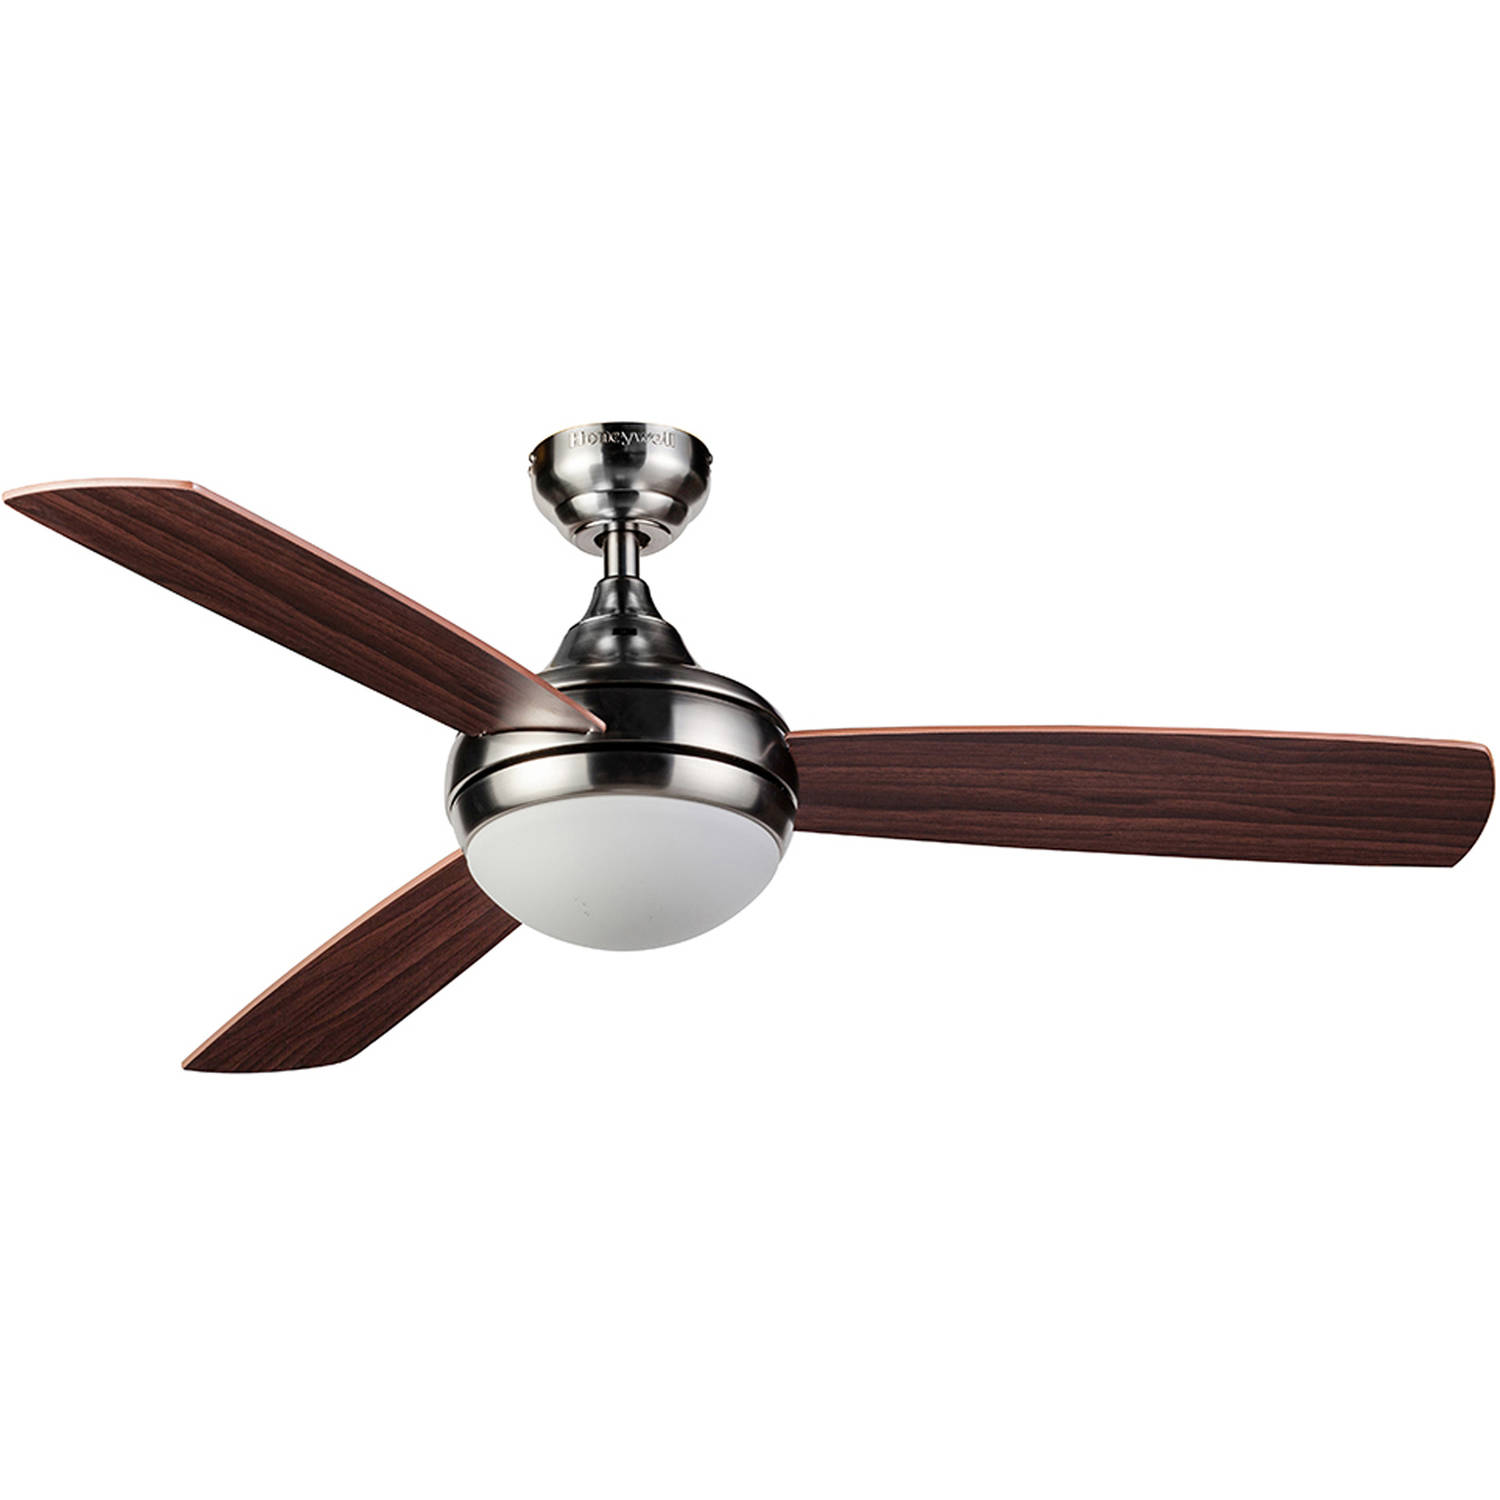 "48"" Honeywell Bellecrest Ceiling Fan with Remote, Satin Nickel - Walmart.com"